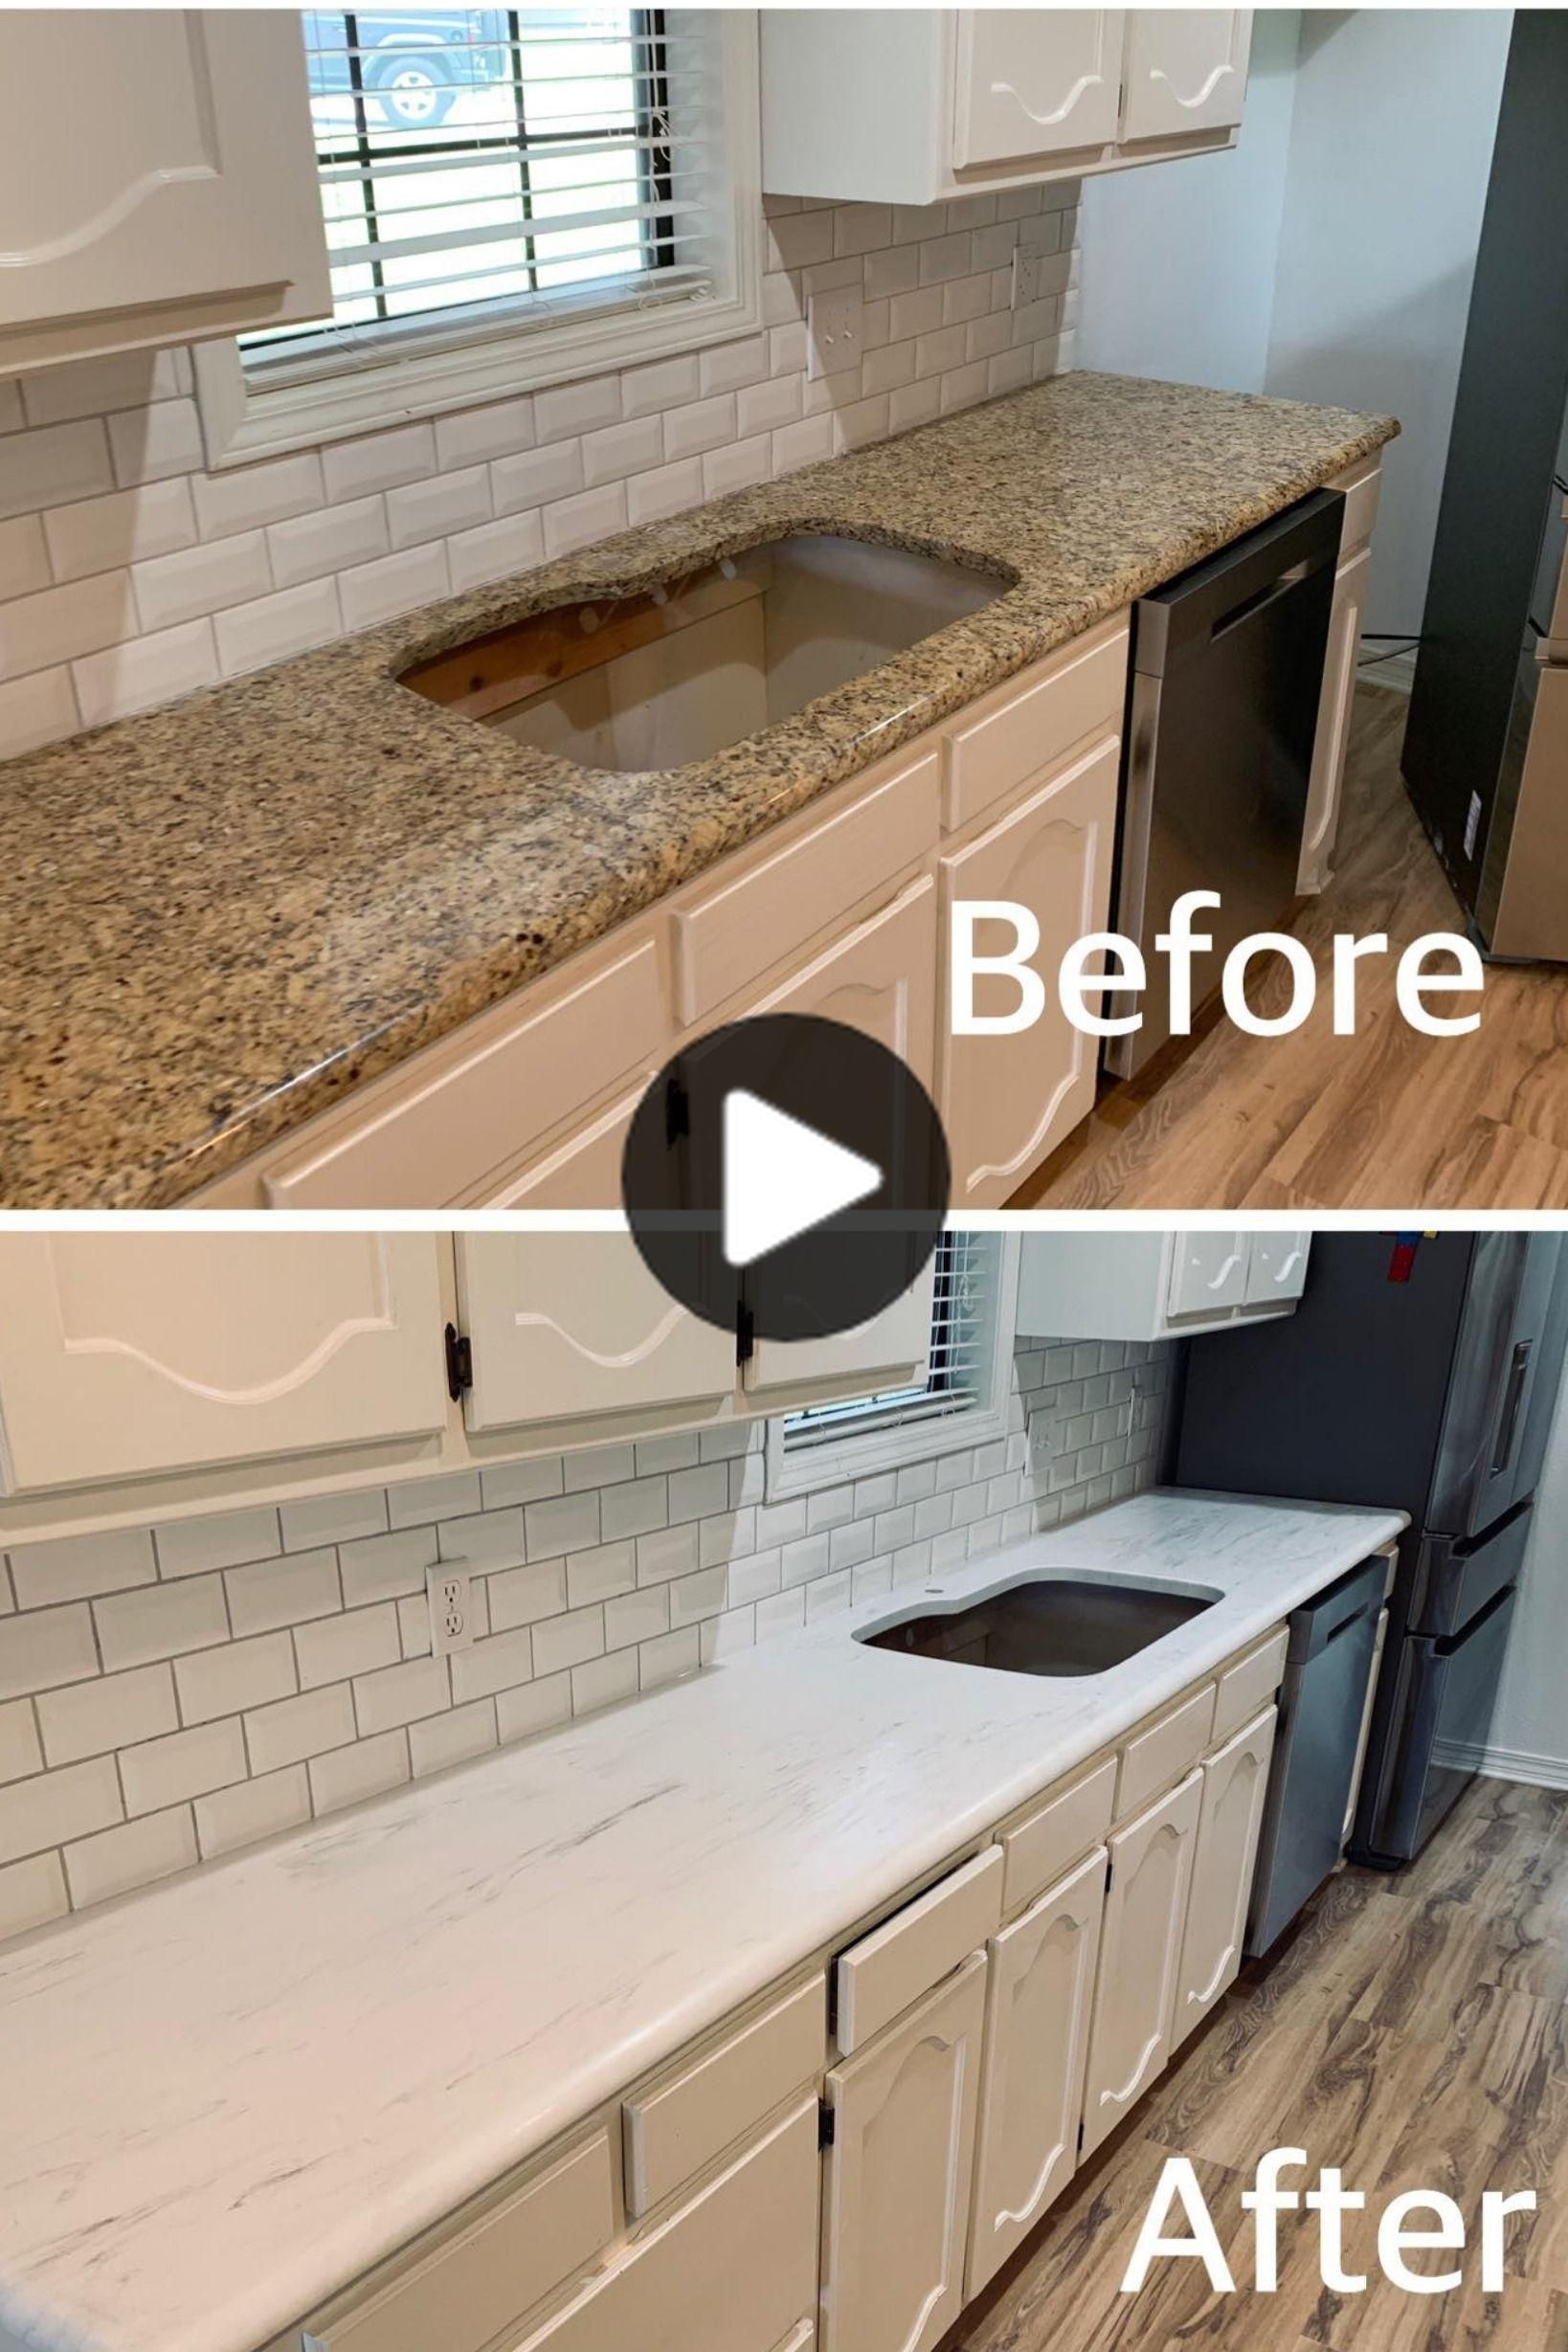 Before And After Epoxy Countertops Diy Epoxy Countertops To Transform Your Space At A Refinish Countertops Painted Countertops Diy Refinishing Countertops Painted Countertops Diy Diy Kitchen Countertops Countertop Makeover